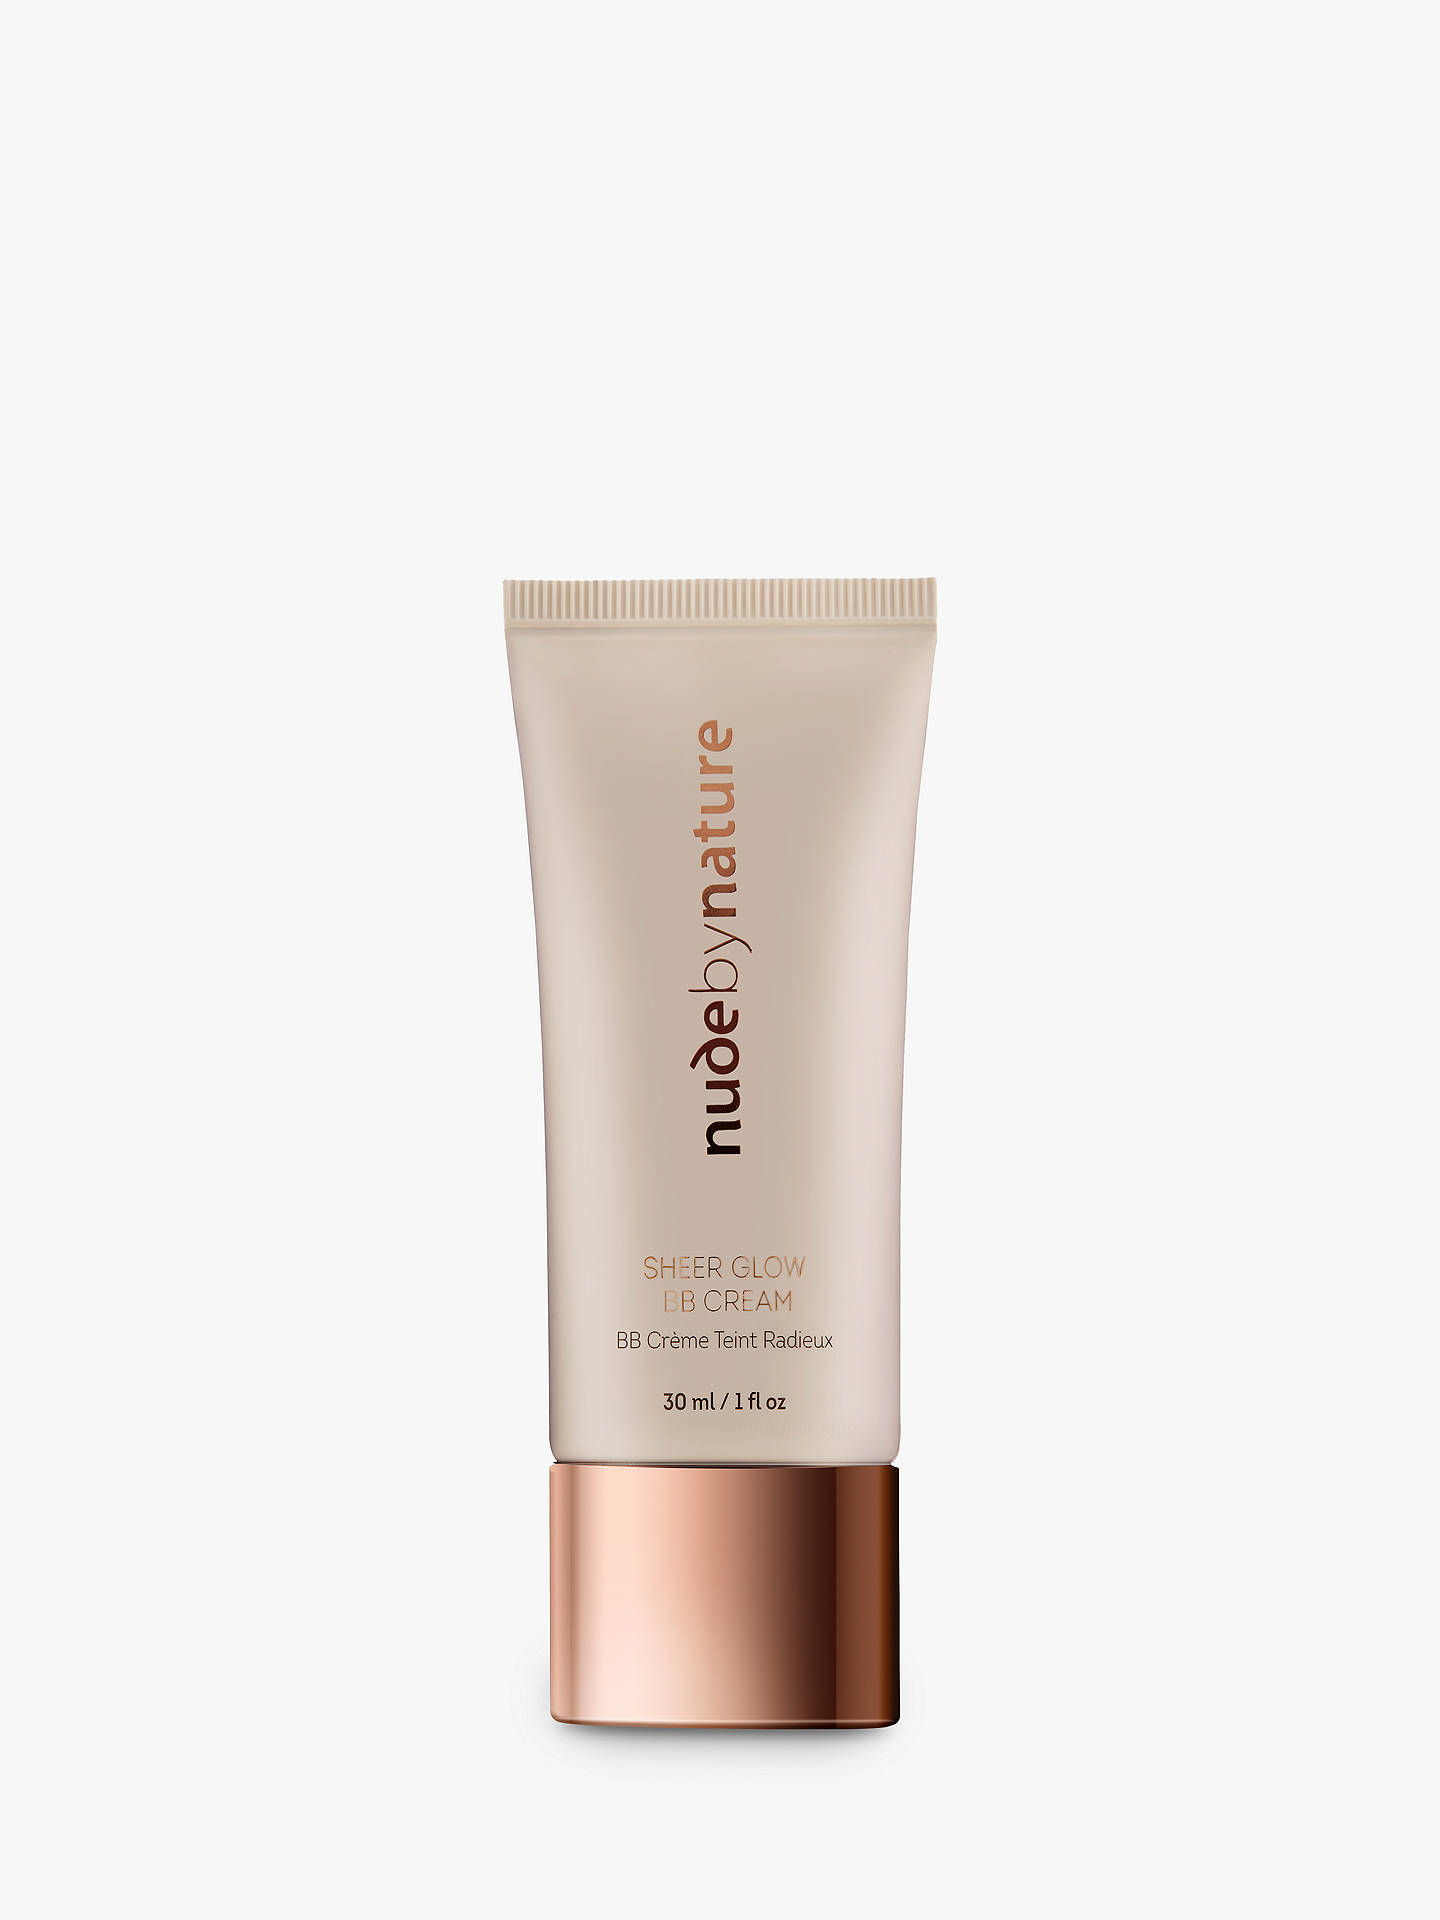 Nude by Nature Foundation Sheer Glow ️ online kaufen   DOUGLAS